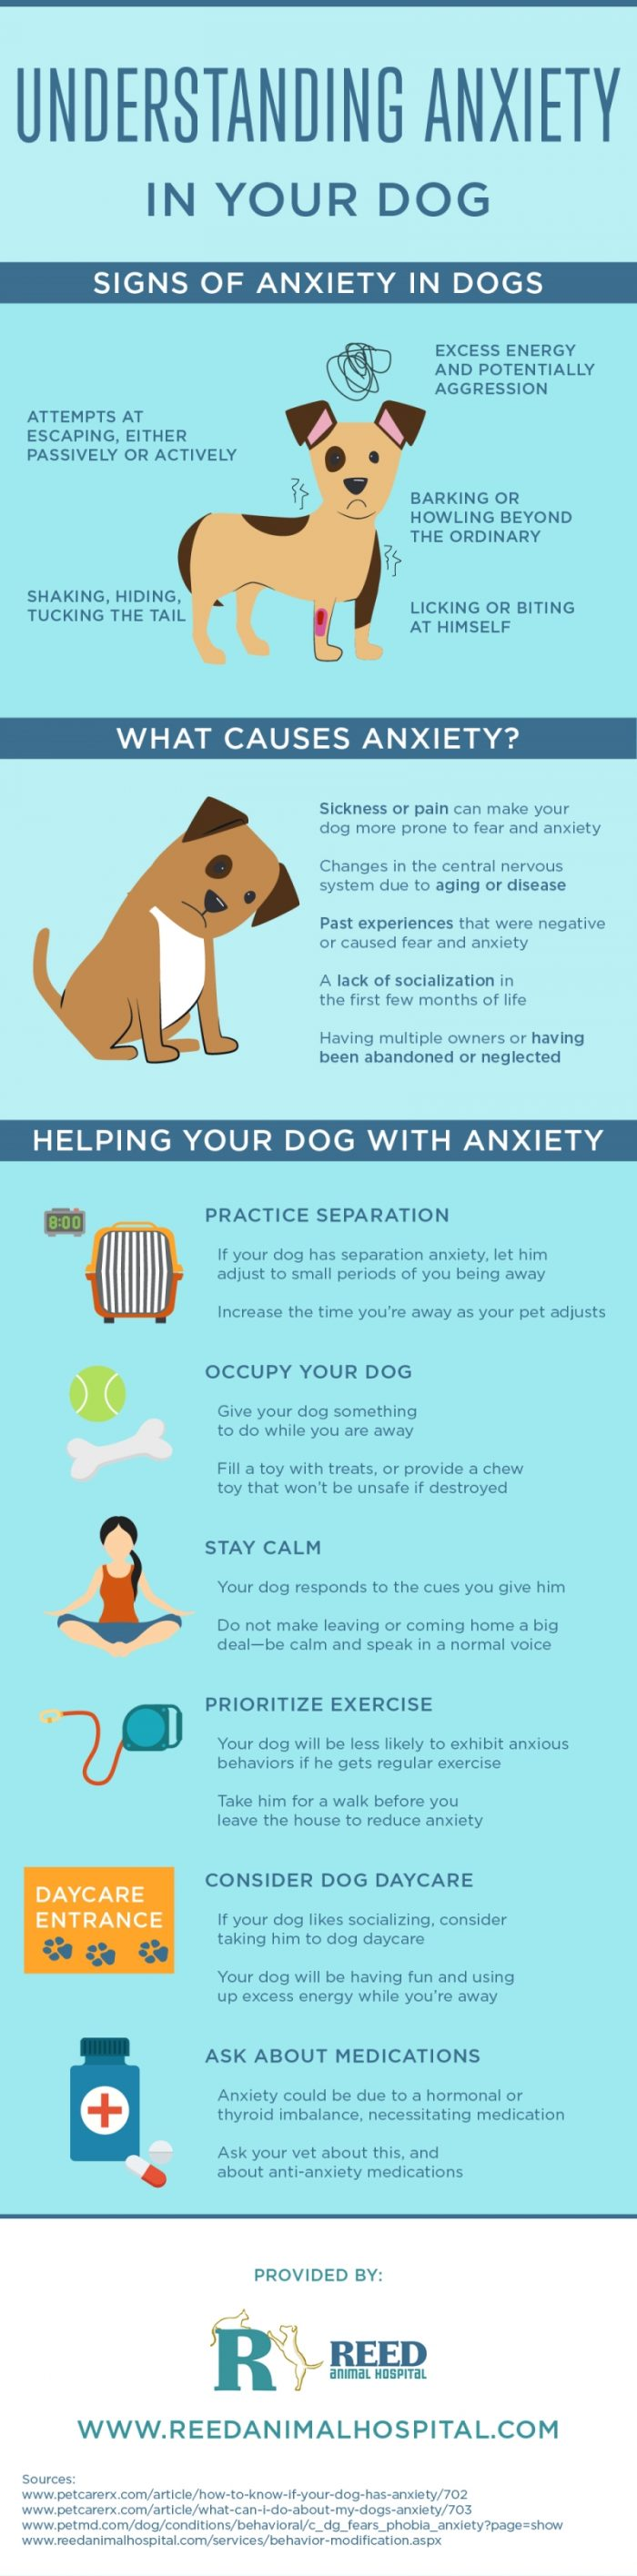 Understanding-Anxiety-in-Your-Dog-Infographic1-700x2831.jpg